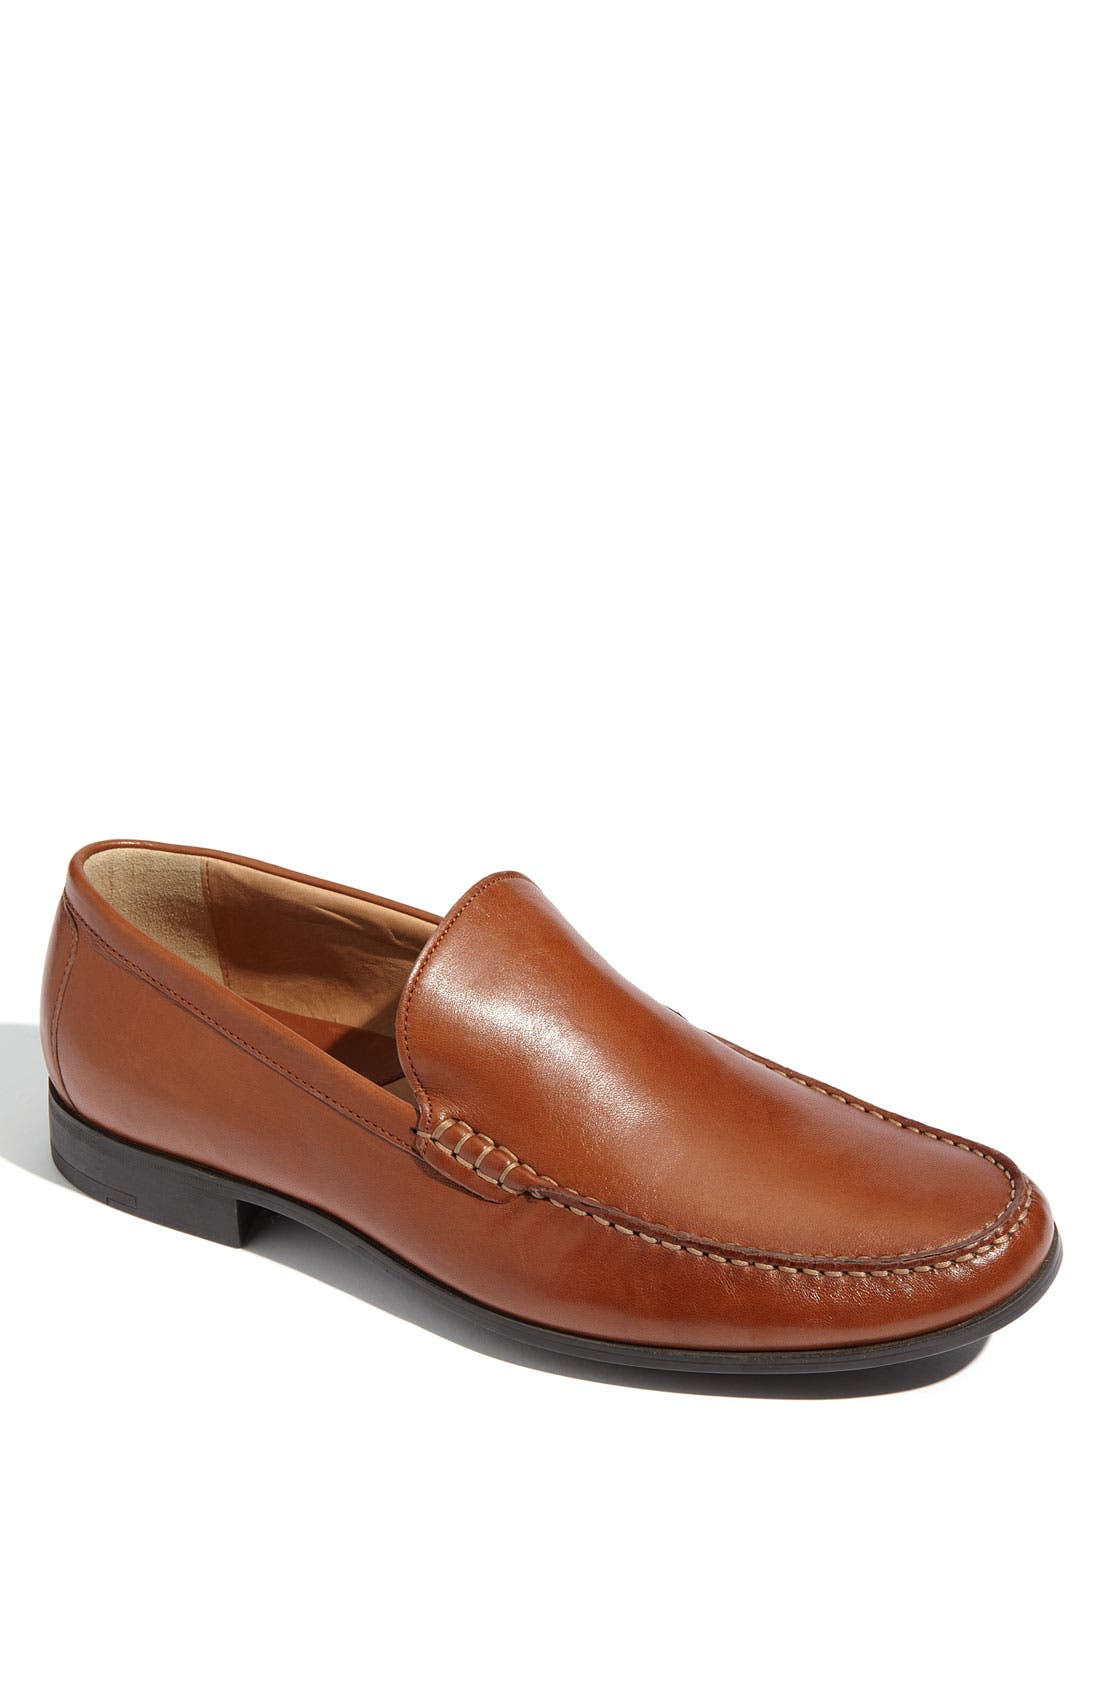 'Creswell' Venetian Slip-On,                             Main thumbnail 1, color,                             COGNAC